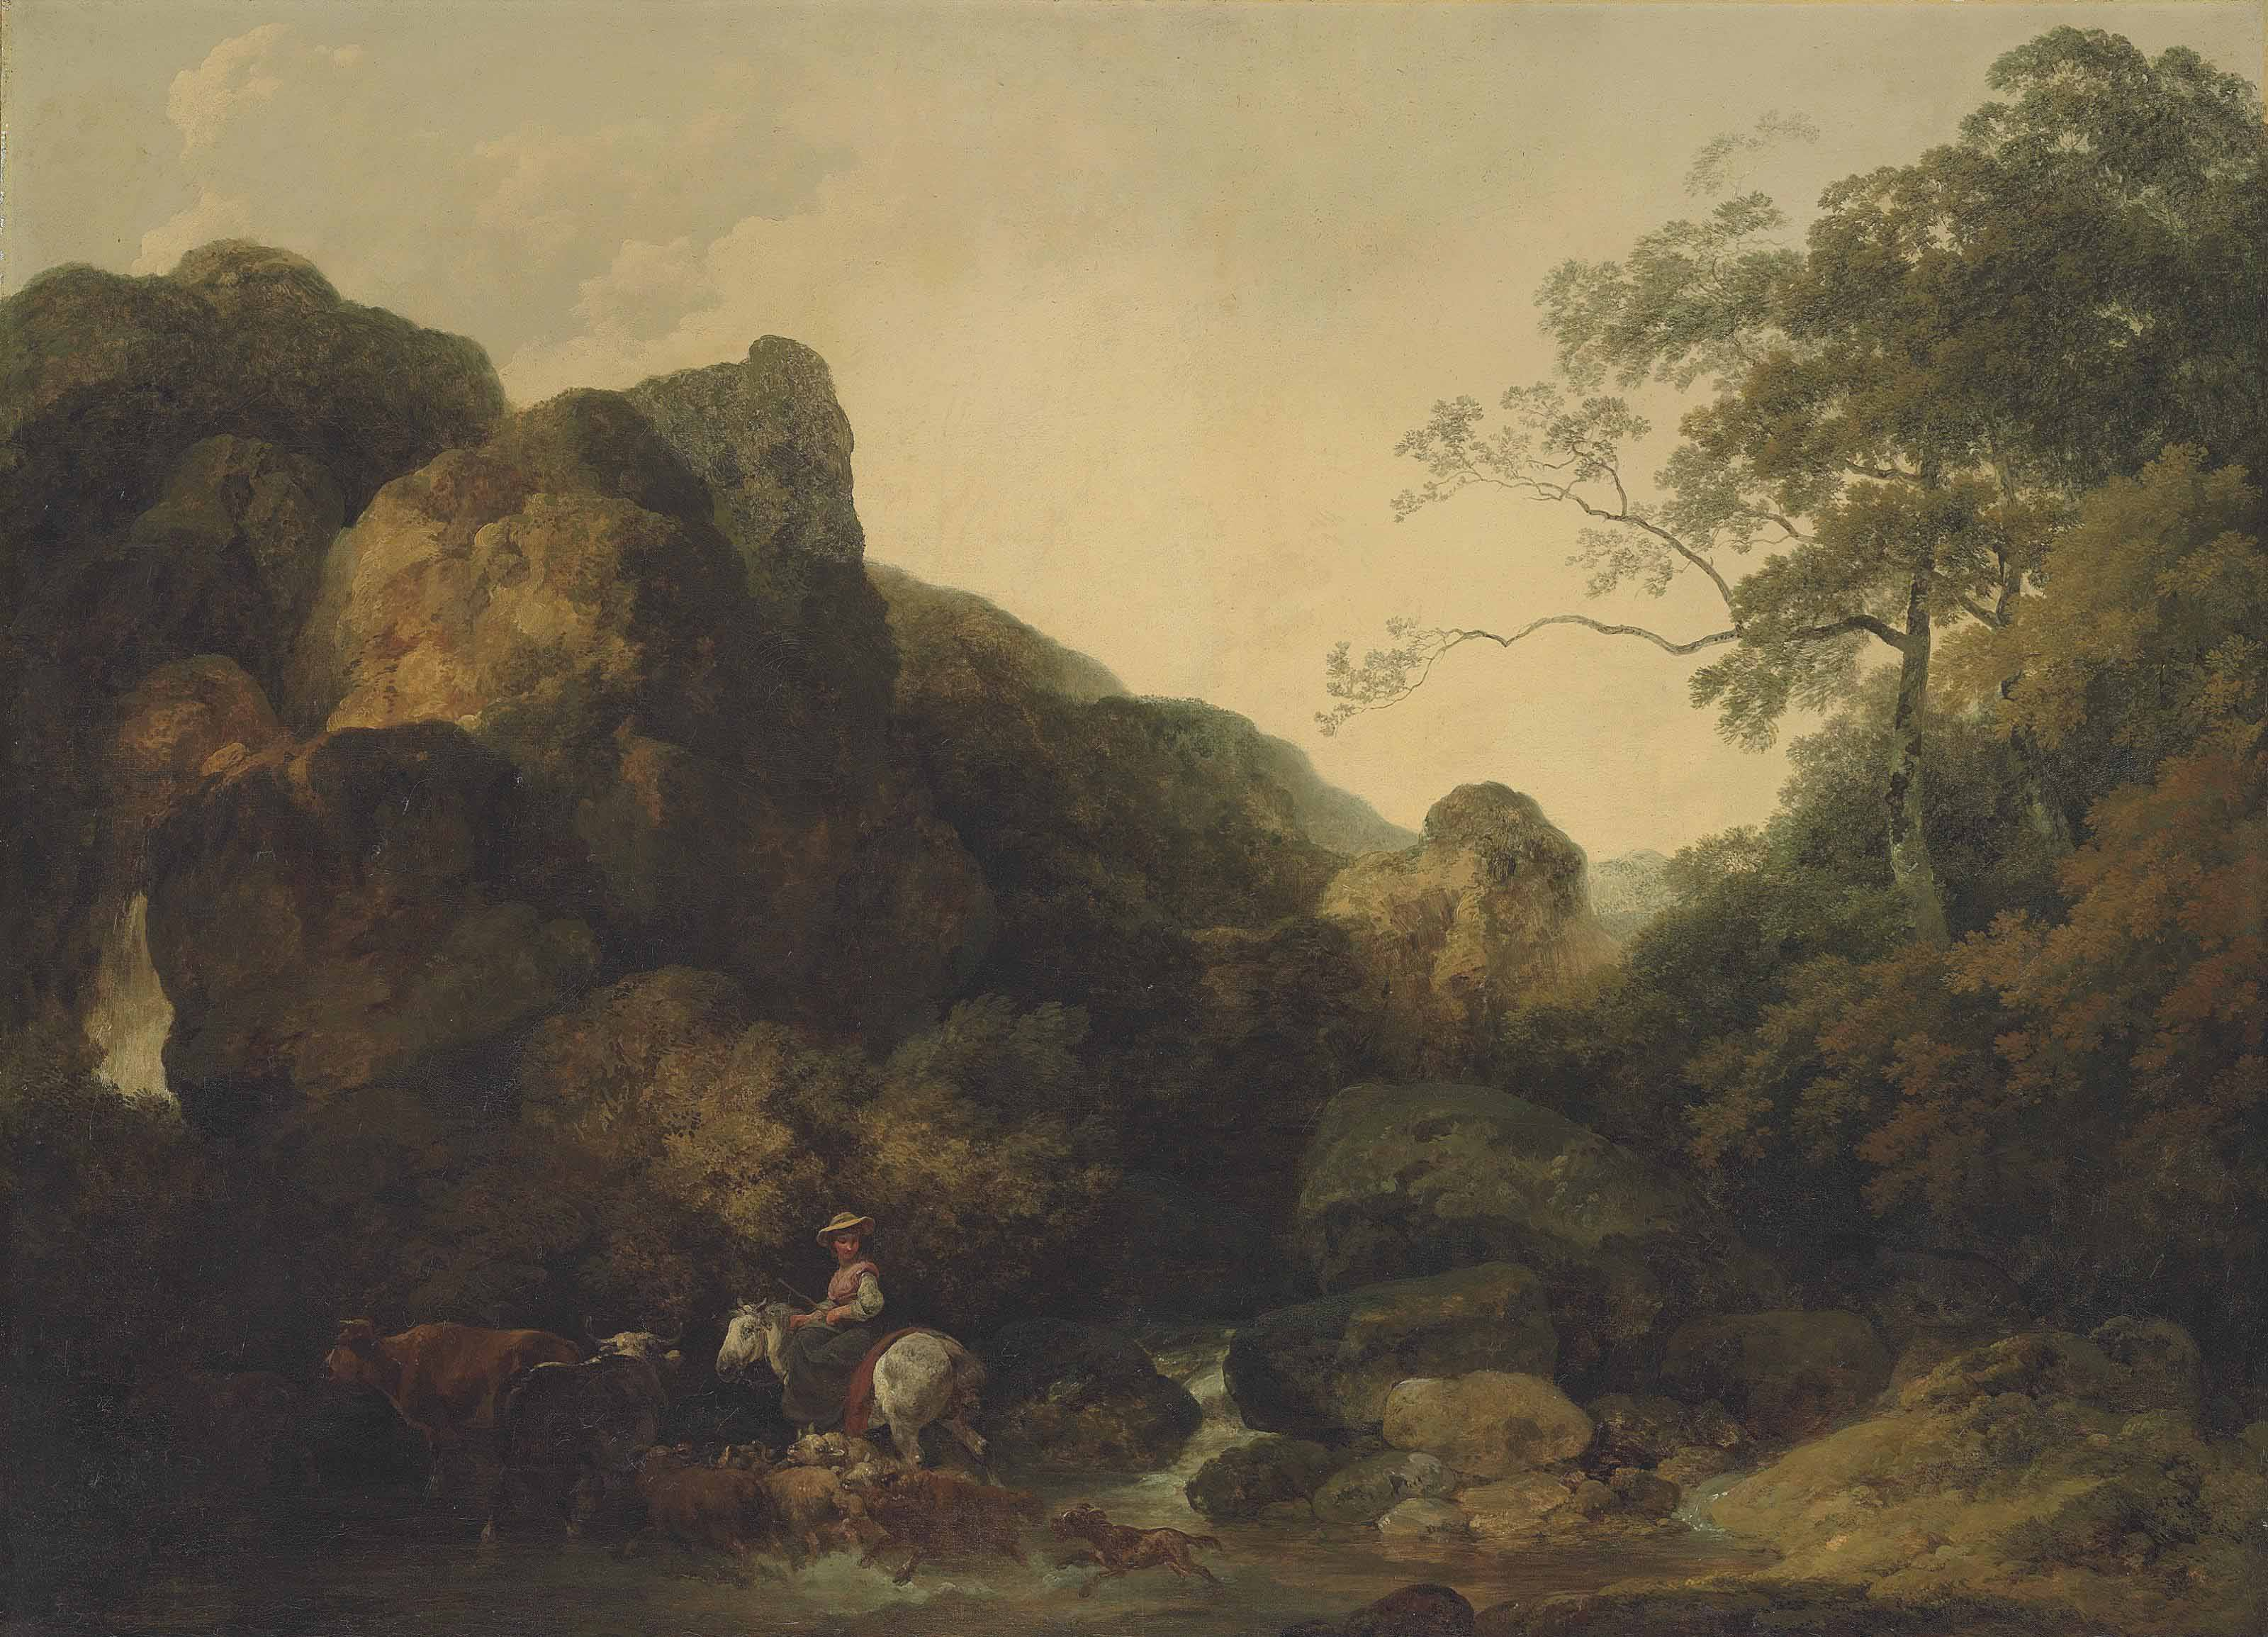 A rocky wooded landscape with a shepherdess on horseback crossing a river